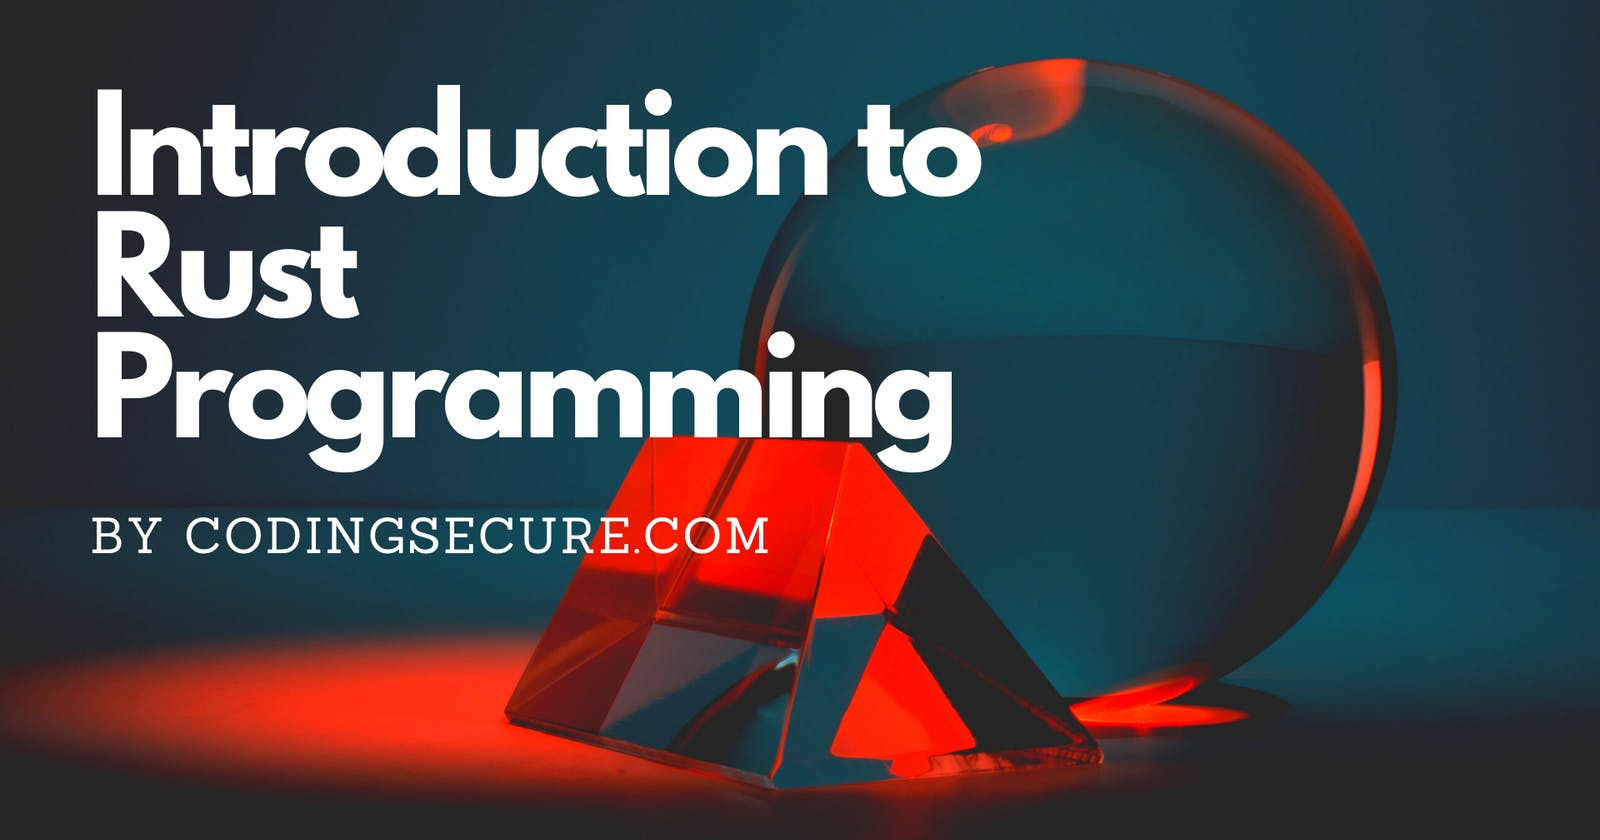 Introduction to Rust Programming